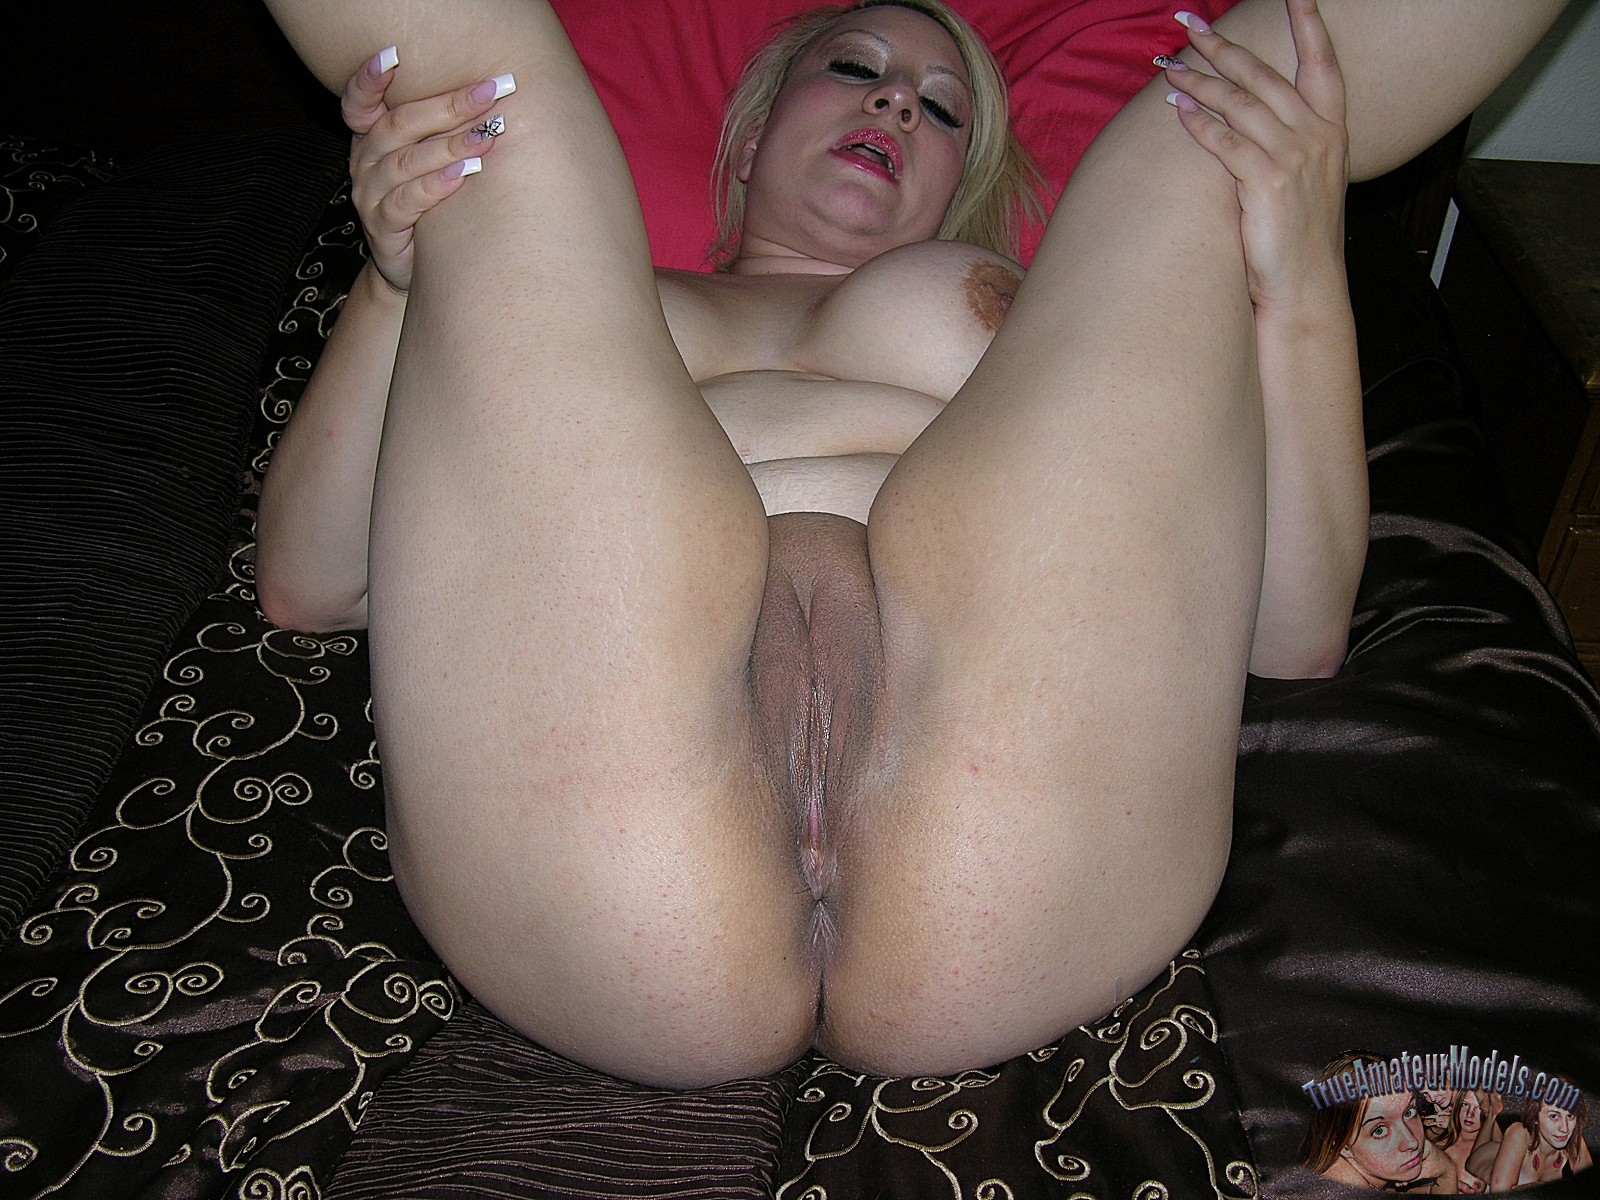 with you free mature skinny blonde video good luck!